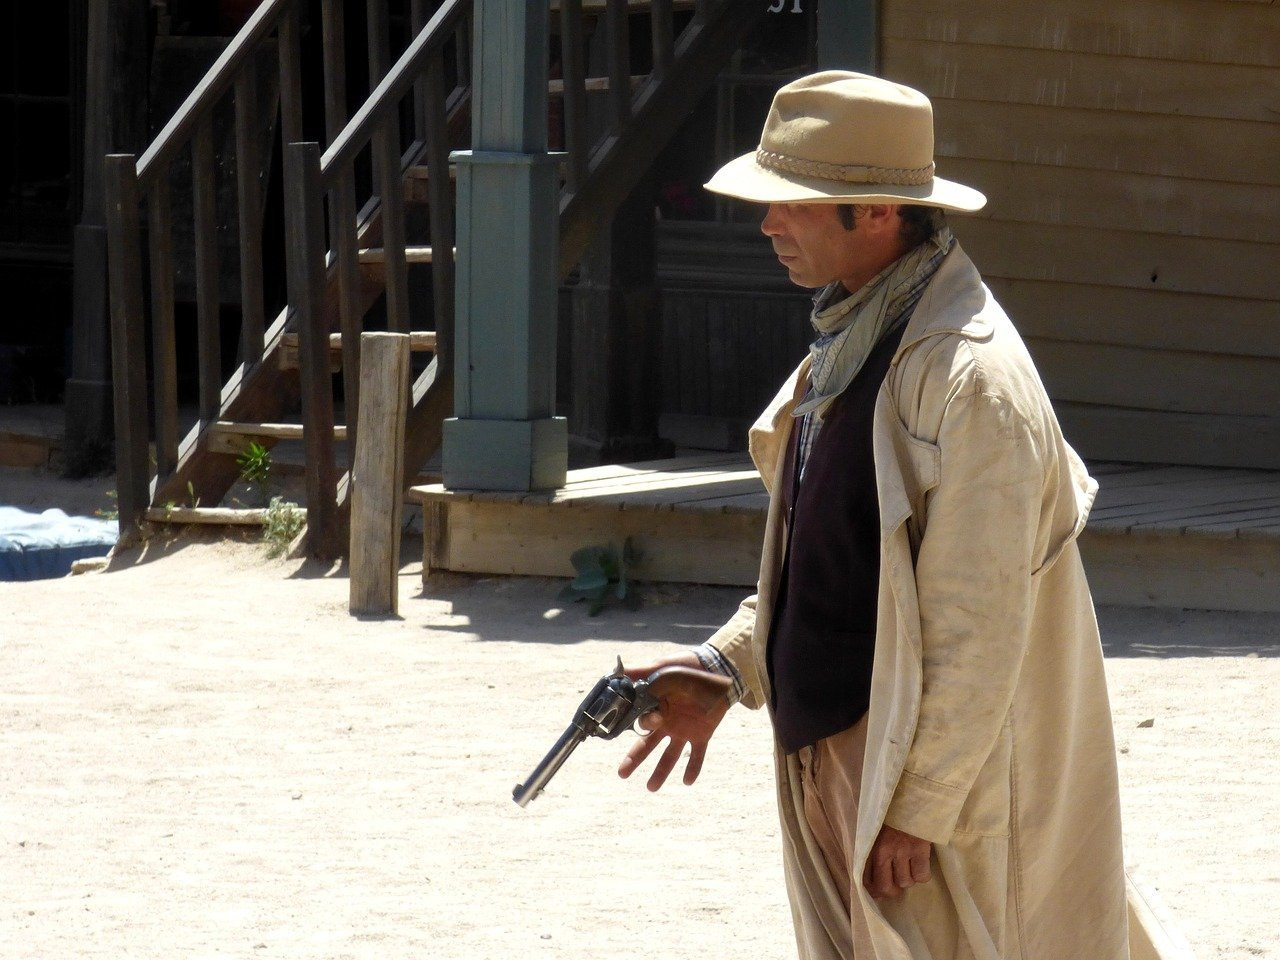 A cowboy standing outside while holding a gun in his hand   Photo: Pixabay/Pashi